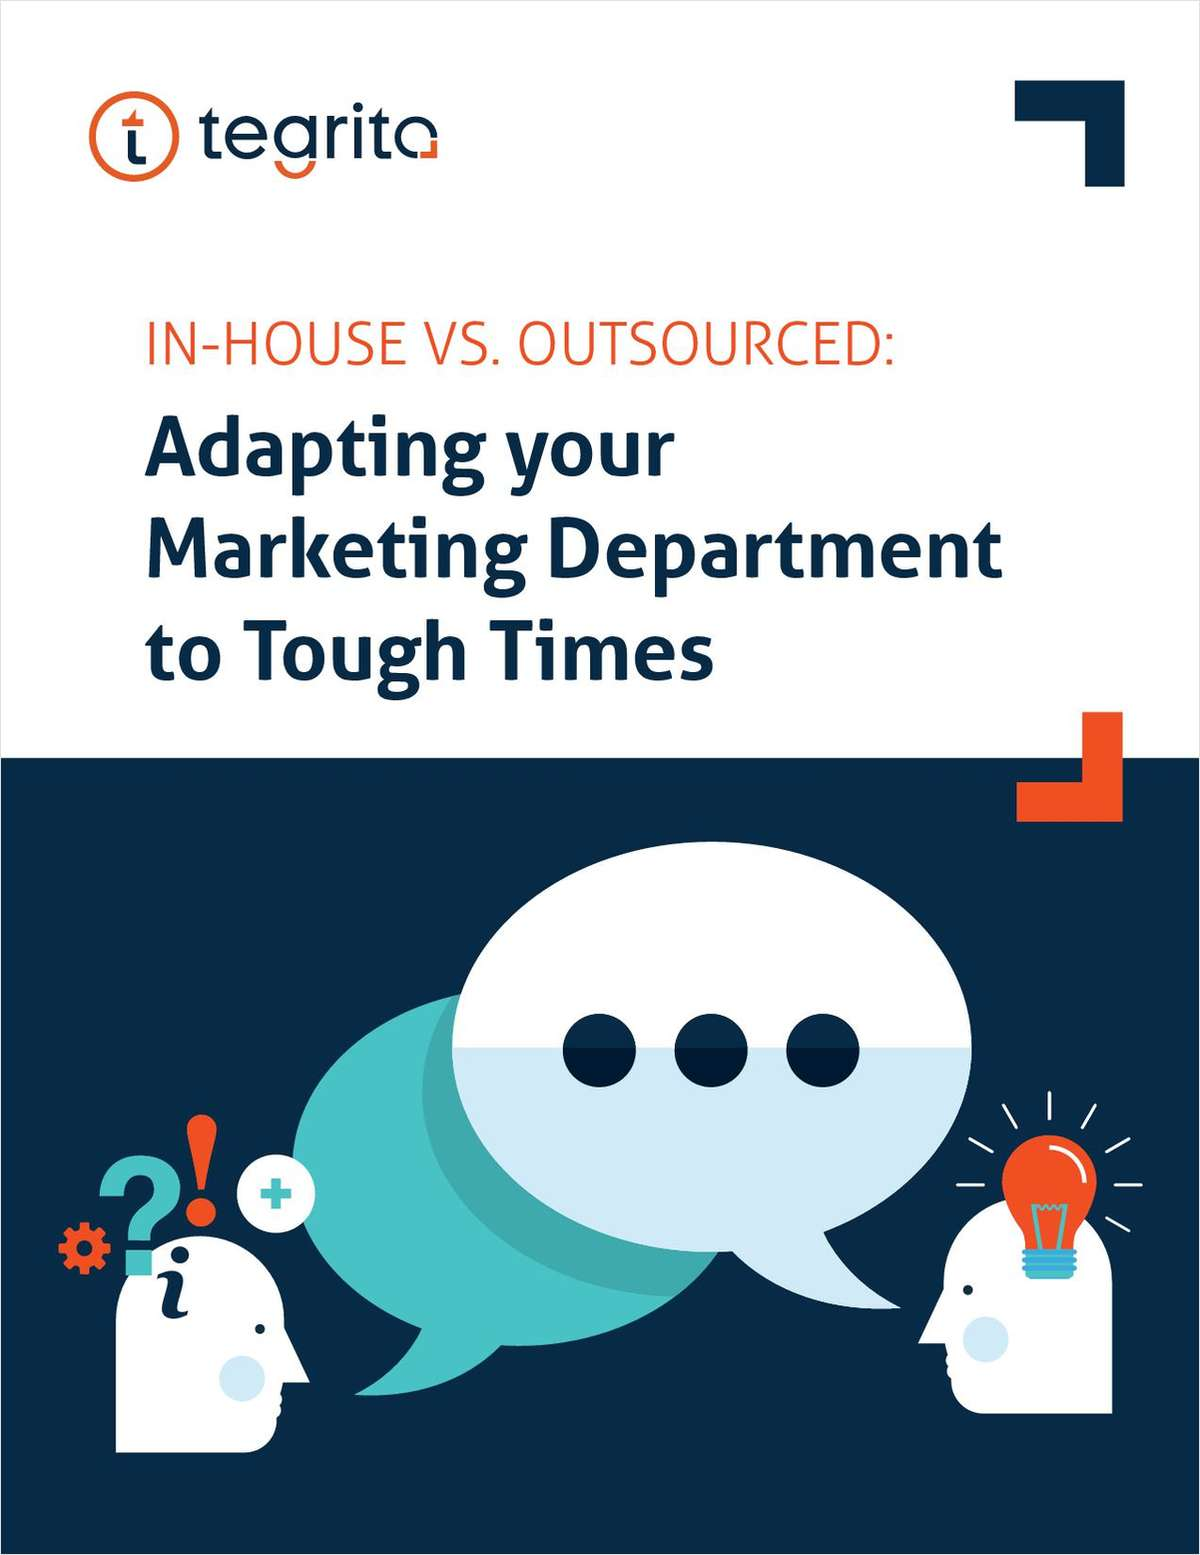 In-House Vs. Outsourced: Adapting your Marketing Department to Tough Times